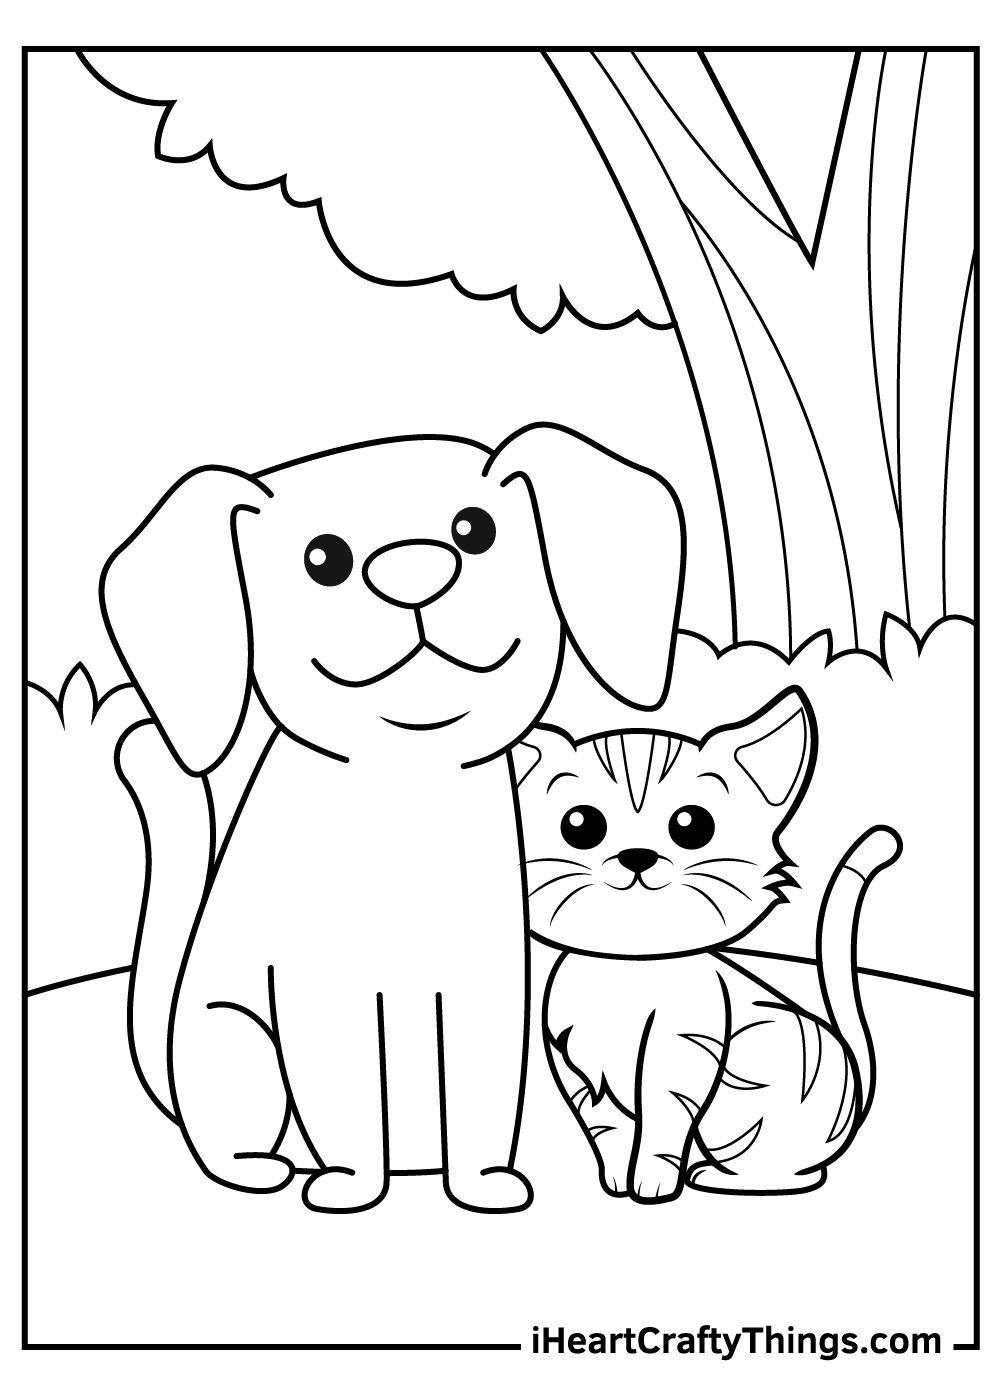 free printable dog and cat coloring pages